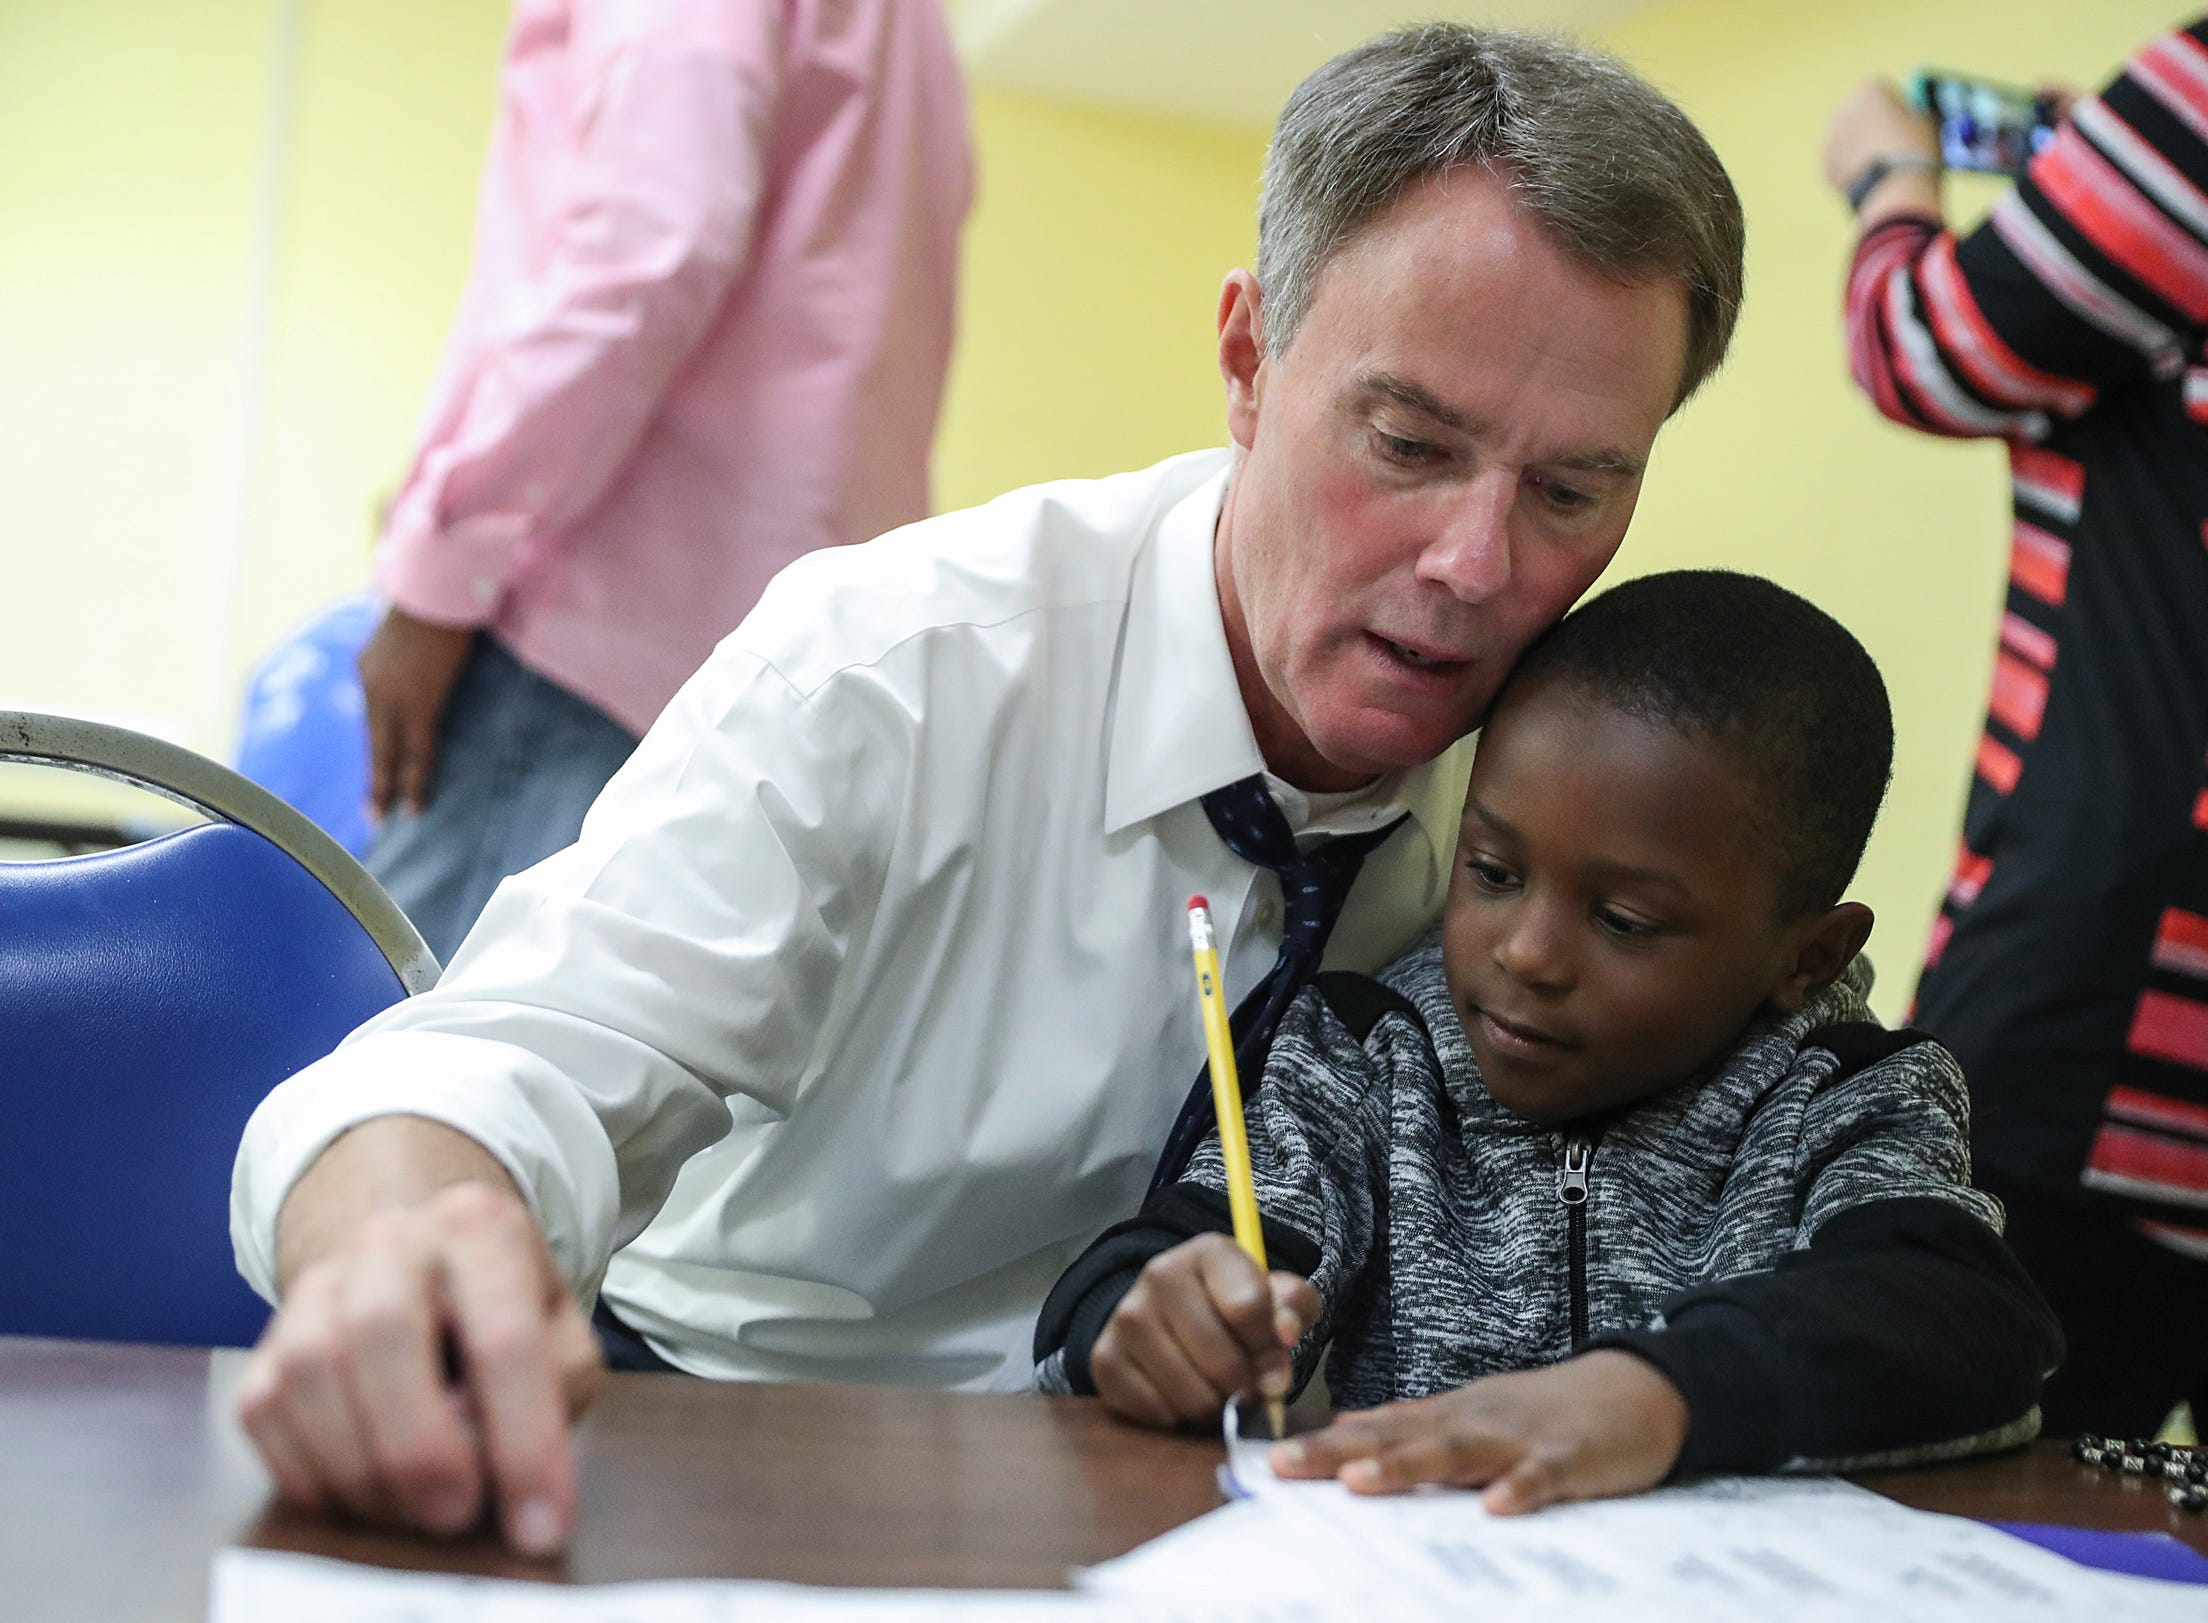 Indianapolis Mayor Joe Hogsett stop to help Demerius Frierson, 6, with math homework while touring the Martin Luther King Community Center in Indianapolis, Tuesday, Sept. 11, 2018. Frierson participates in the Read to Lead after-school program.